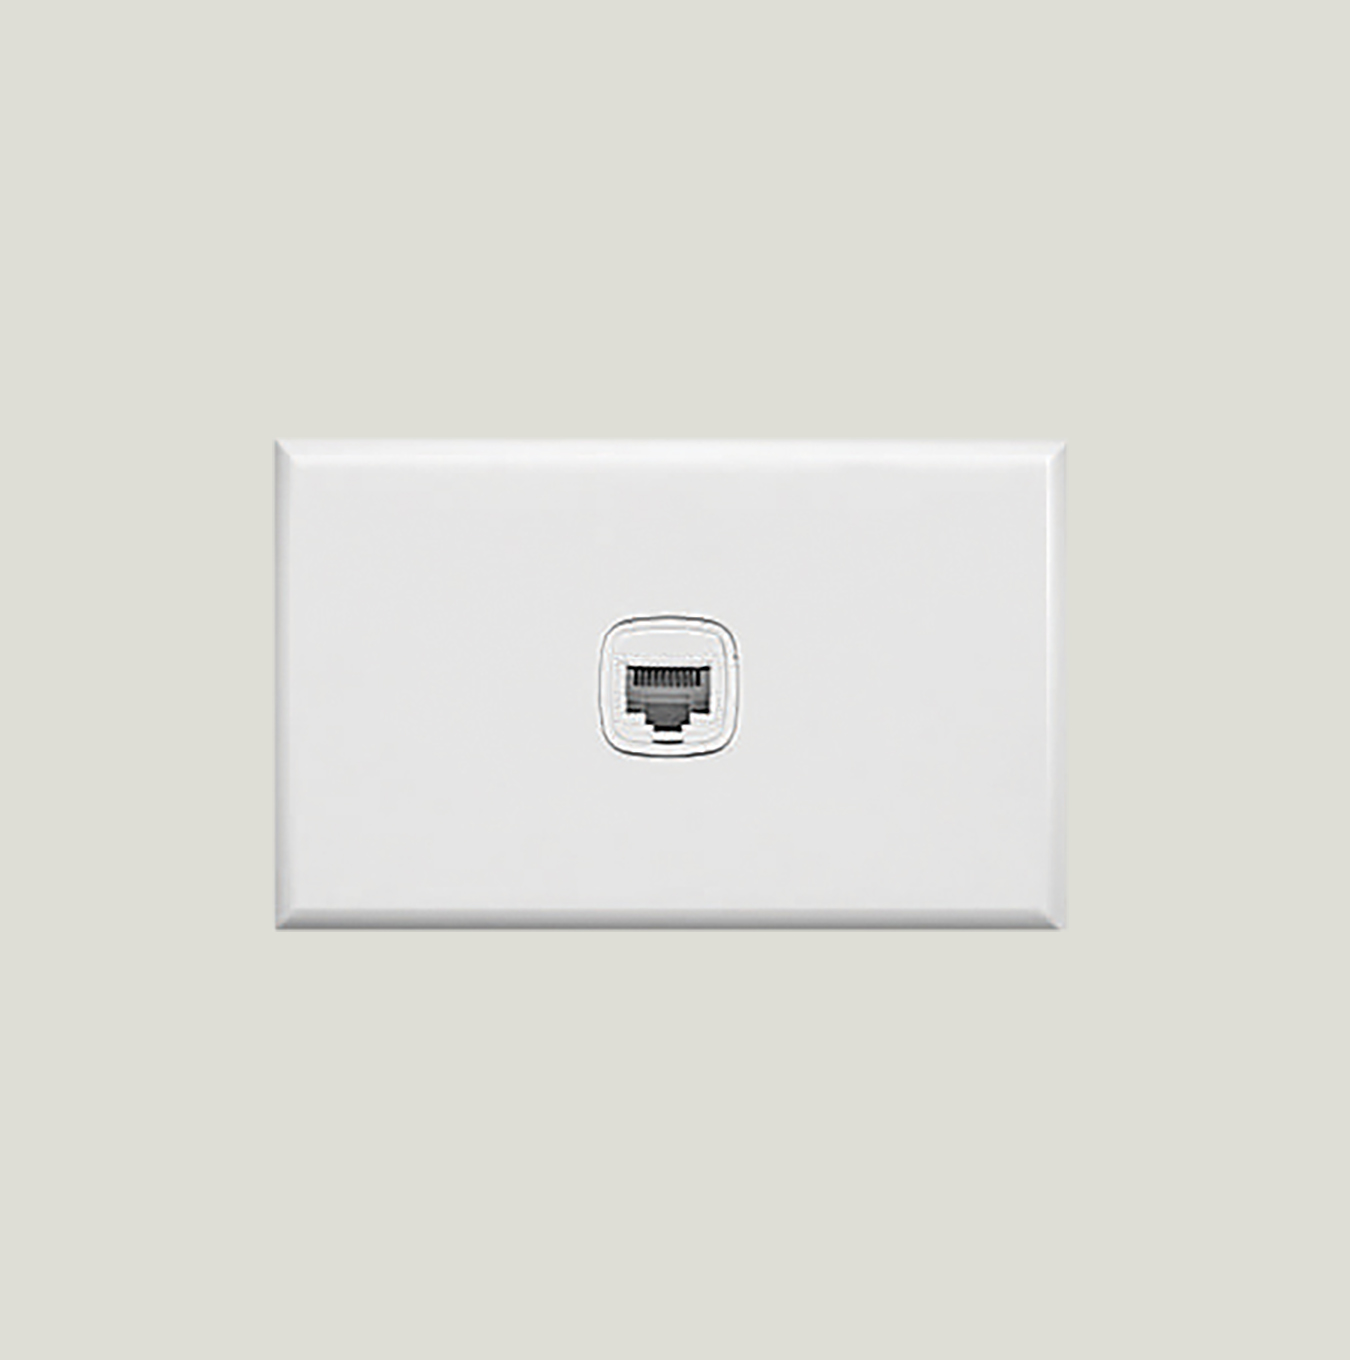 Phone Outlet Rj12 1 Gang Cat3 Au Site Wiring Wall Plate